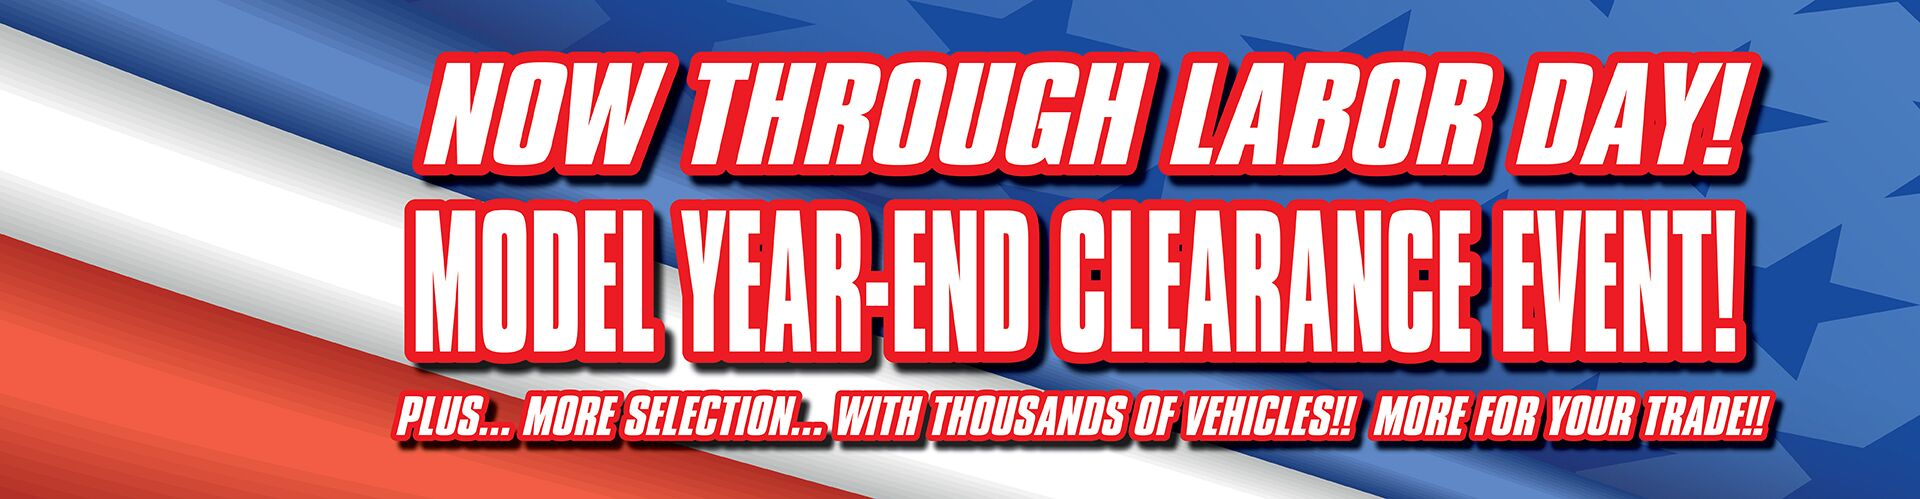 Model Year-End Clearance Sale! - Trade In Your Old Car!